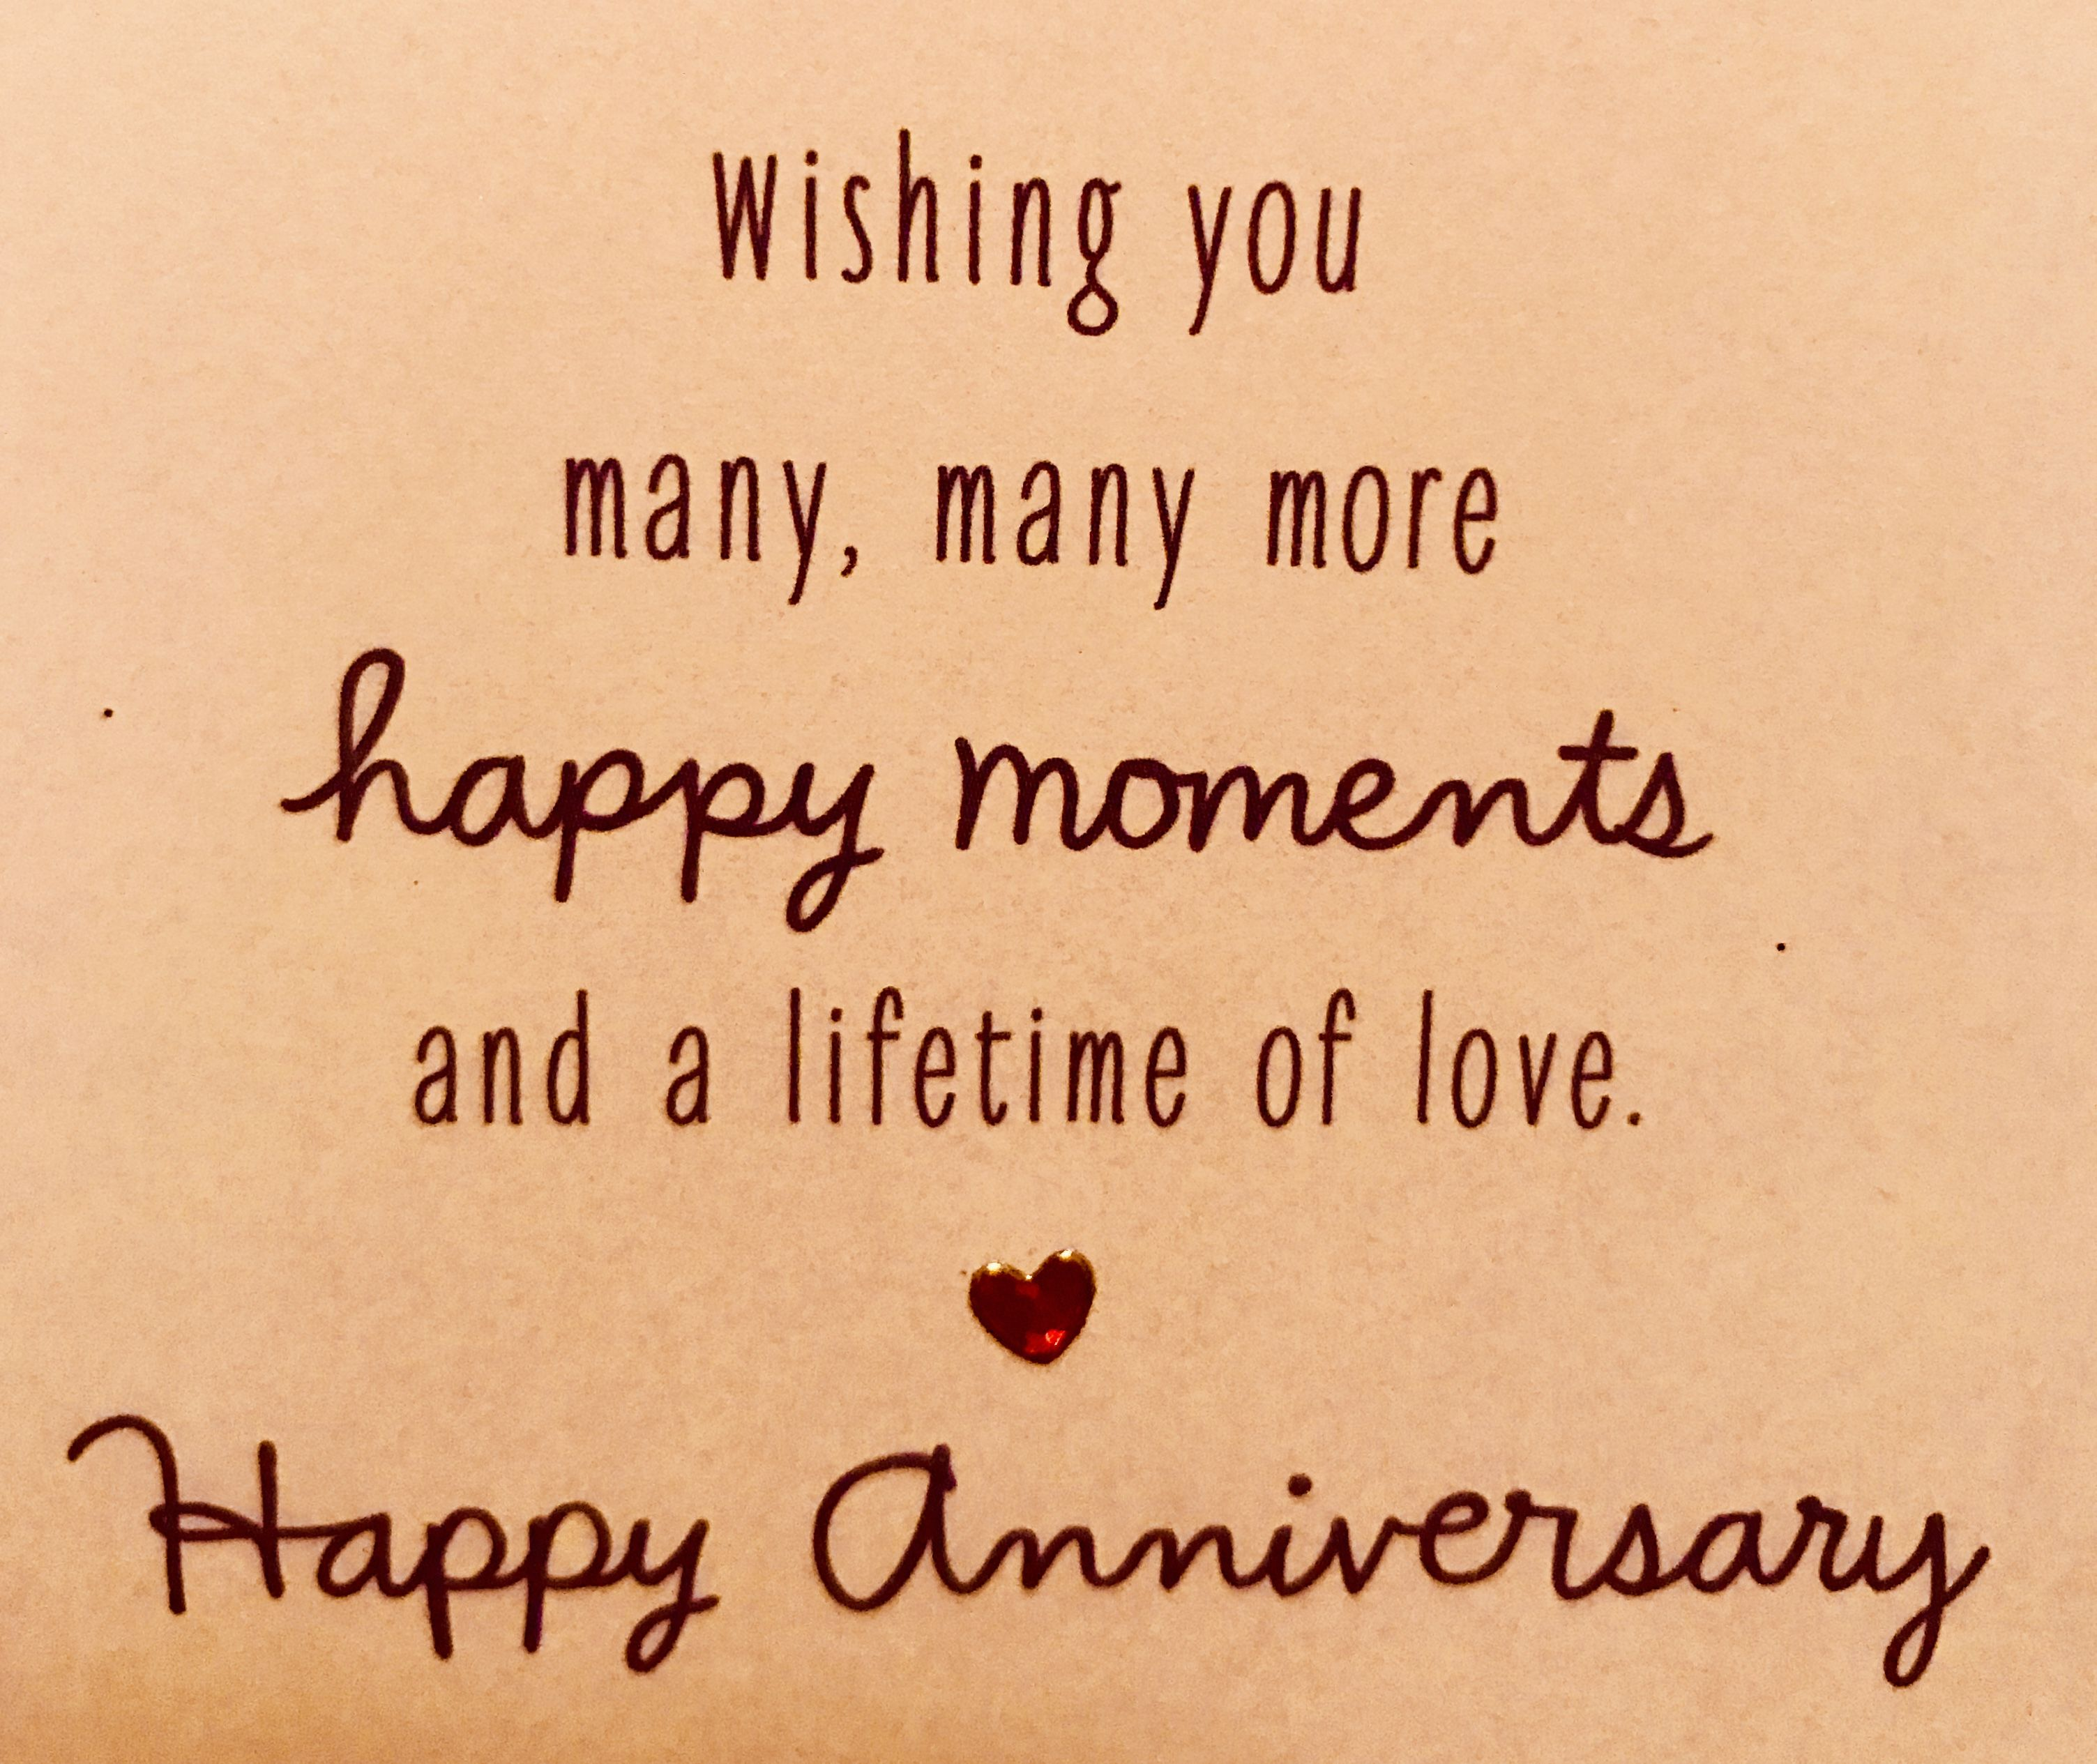 Happy Anniversary Wishing You Many Many More Happy Moments And A Lifetime Of Love Happy Anniversary Quotes Happy Anniversary Funny Funny Anniversary Wishes